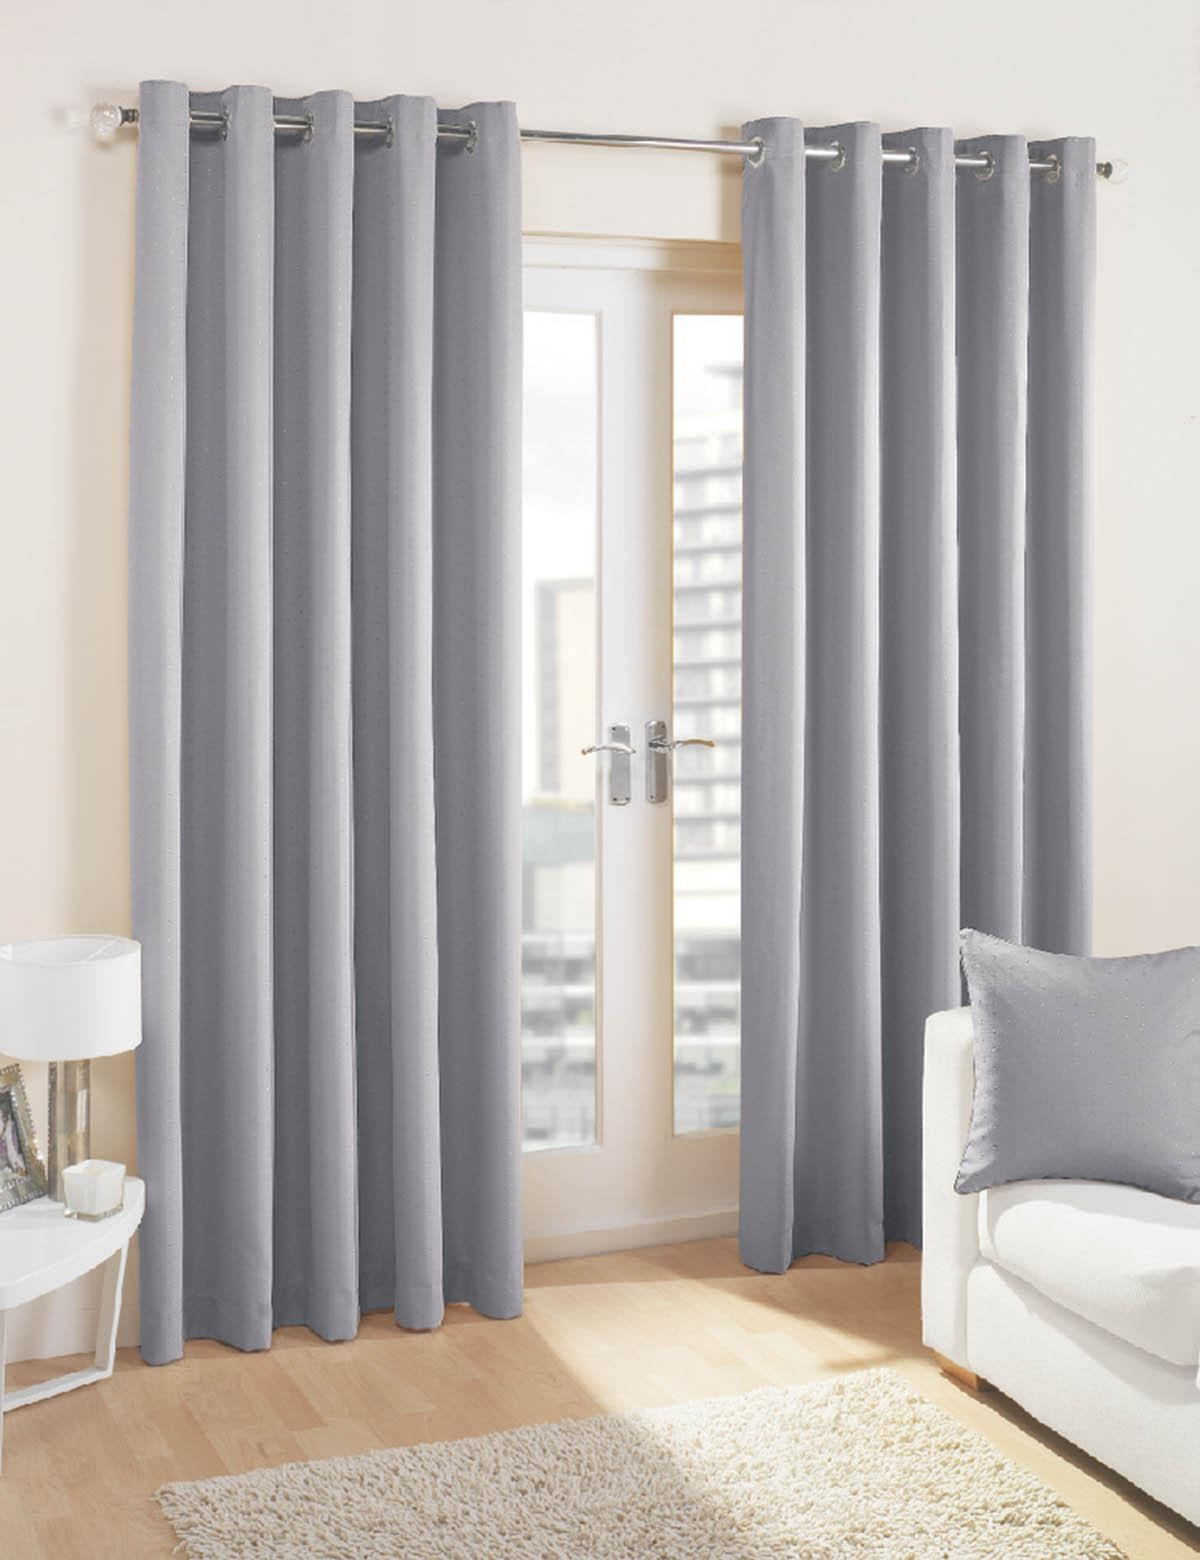 Curtains Midtown Eyelet Lined Curtains Silver Stunning Grey Inside Grey Eyelet Curtains (Image 4 of 25)